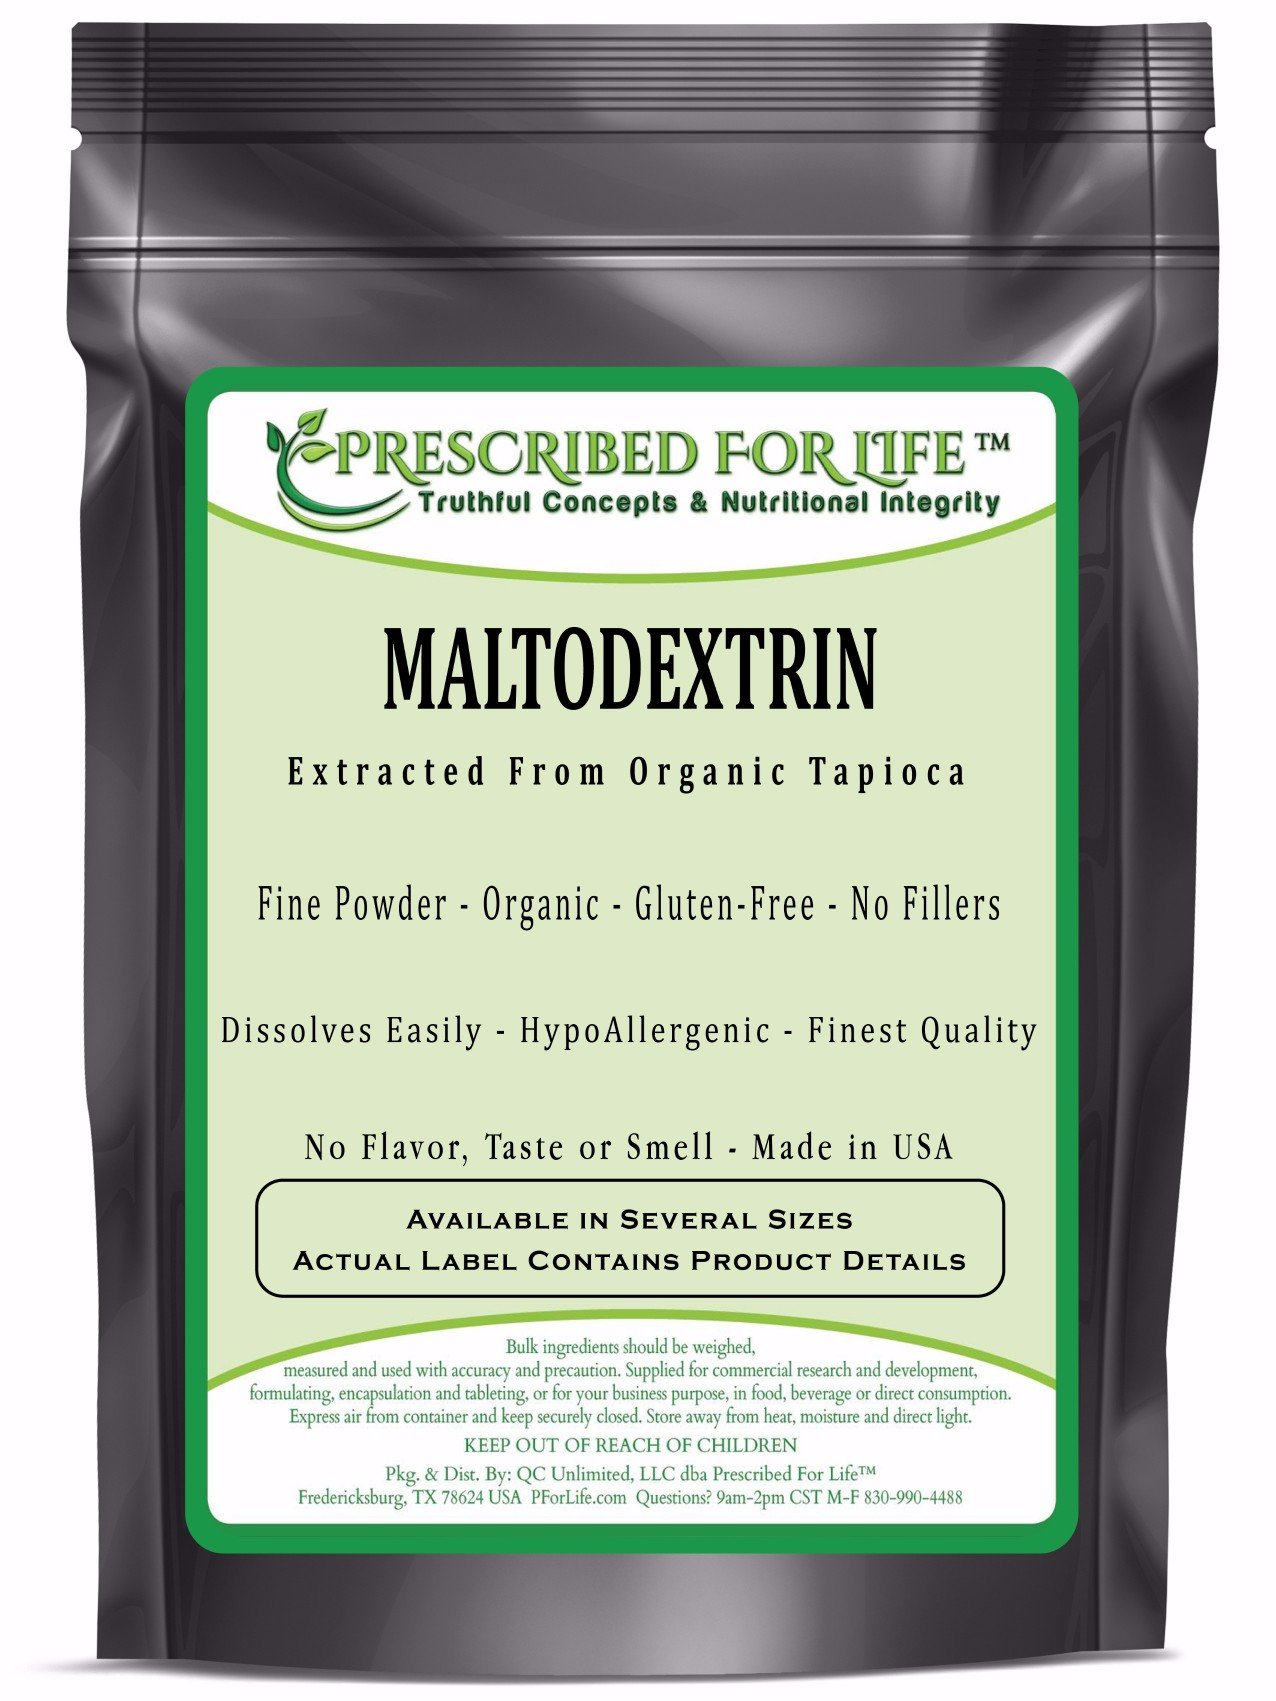 Maltodextrin - Pure Tapioca Quick Dissolving Natural Starch - ING: Organic Powder, 50 lb by Prescribed For Life (Image #1)